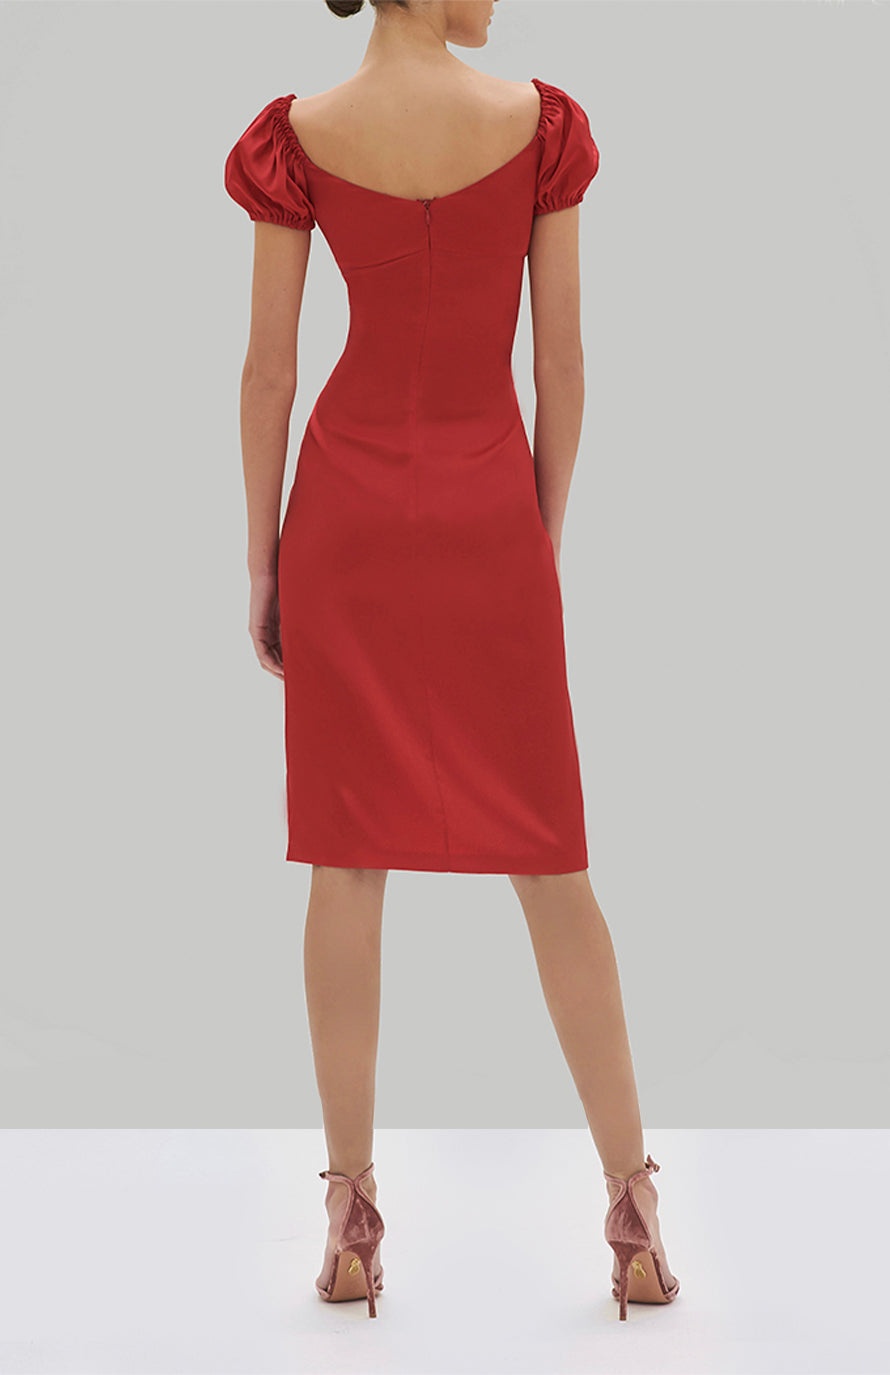 Alexis Cadiz Dress Red - Rear View